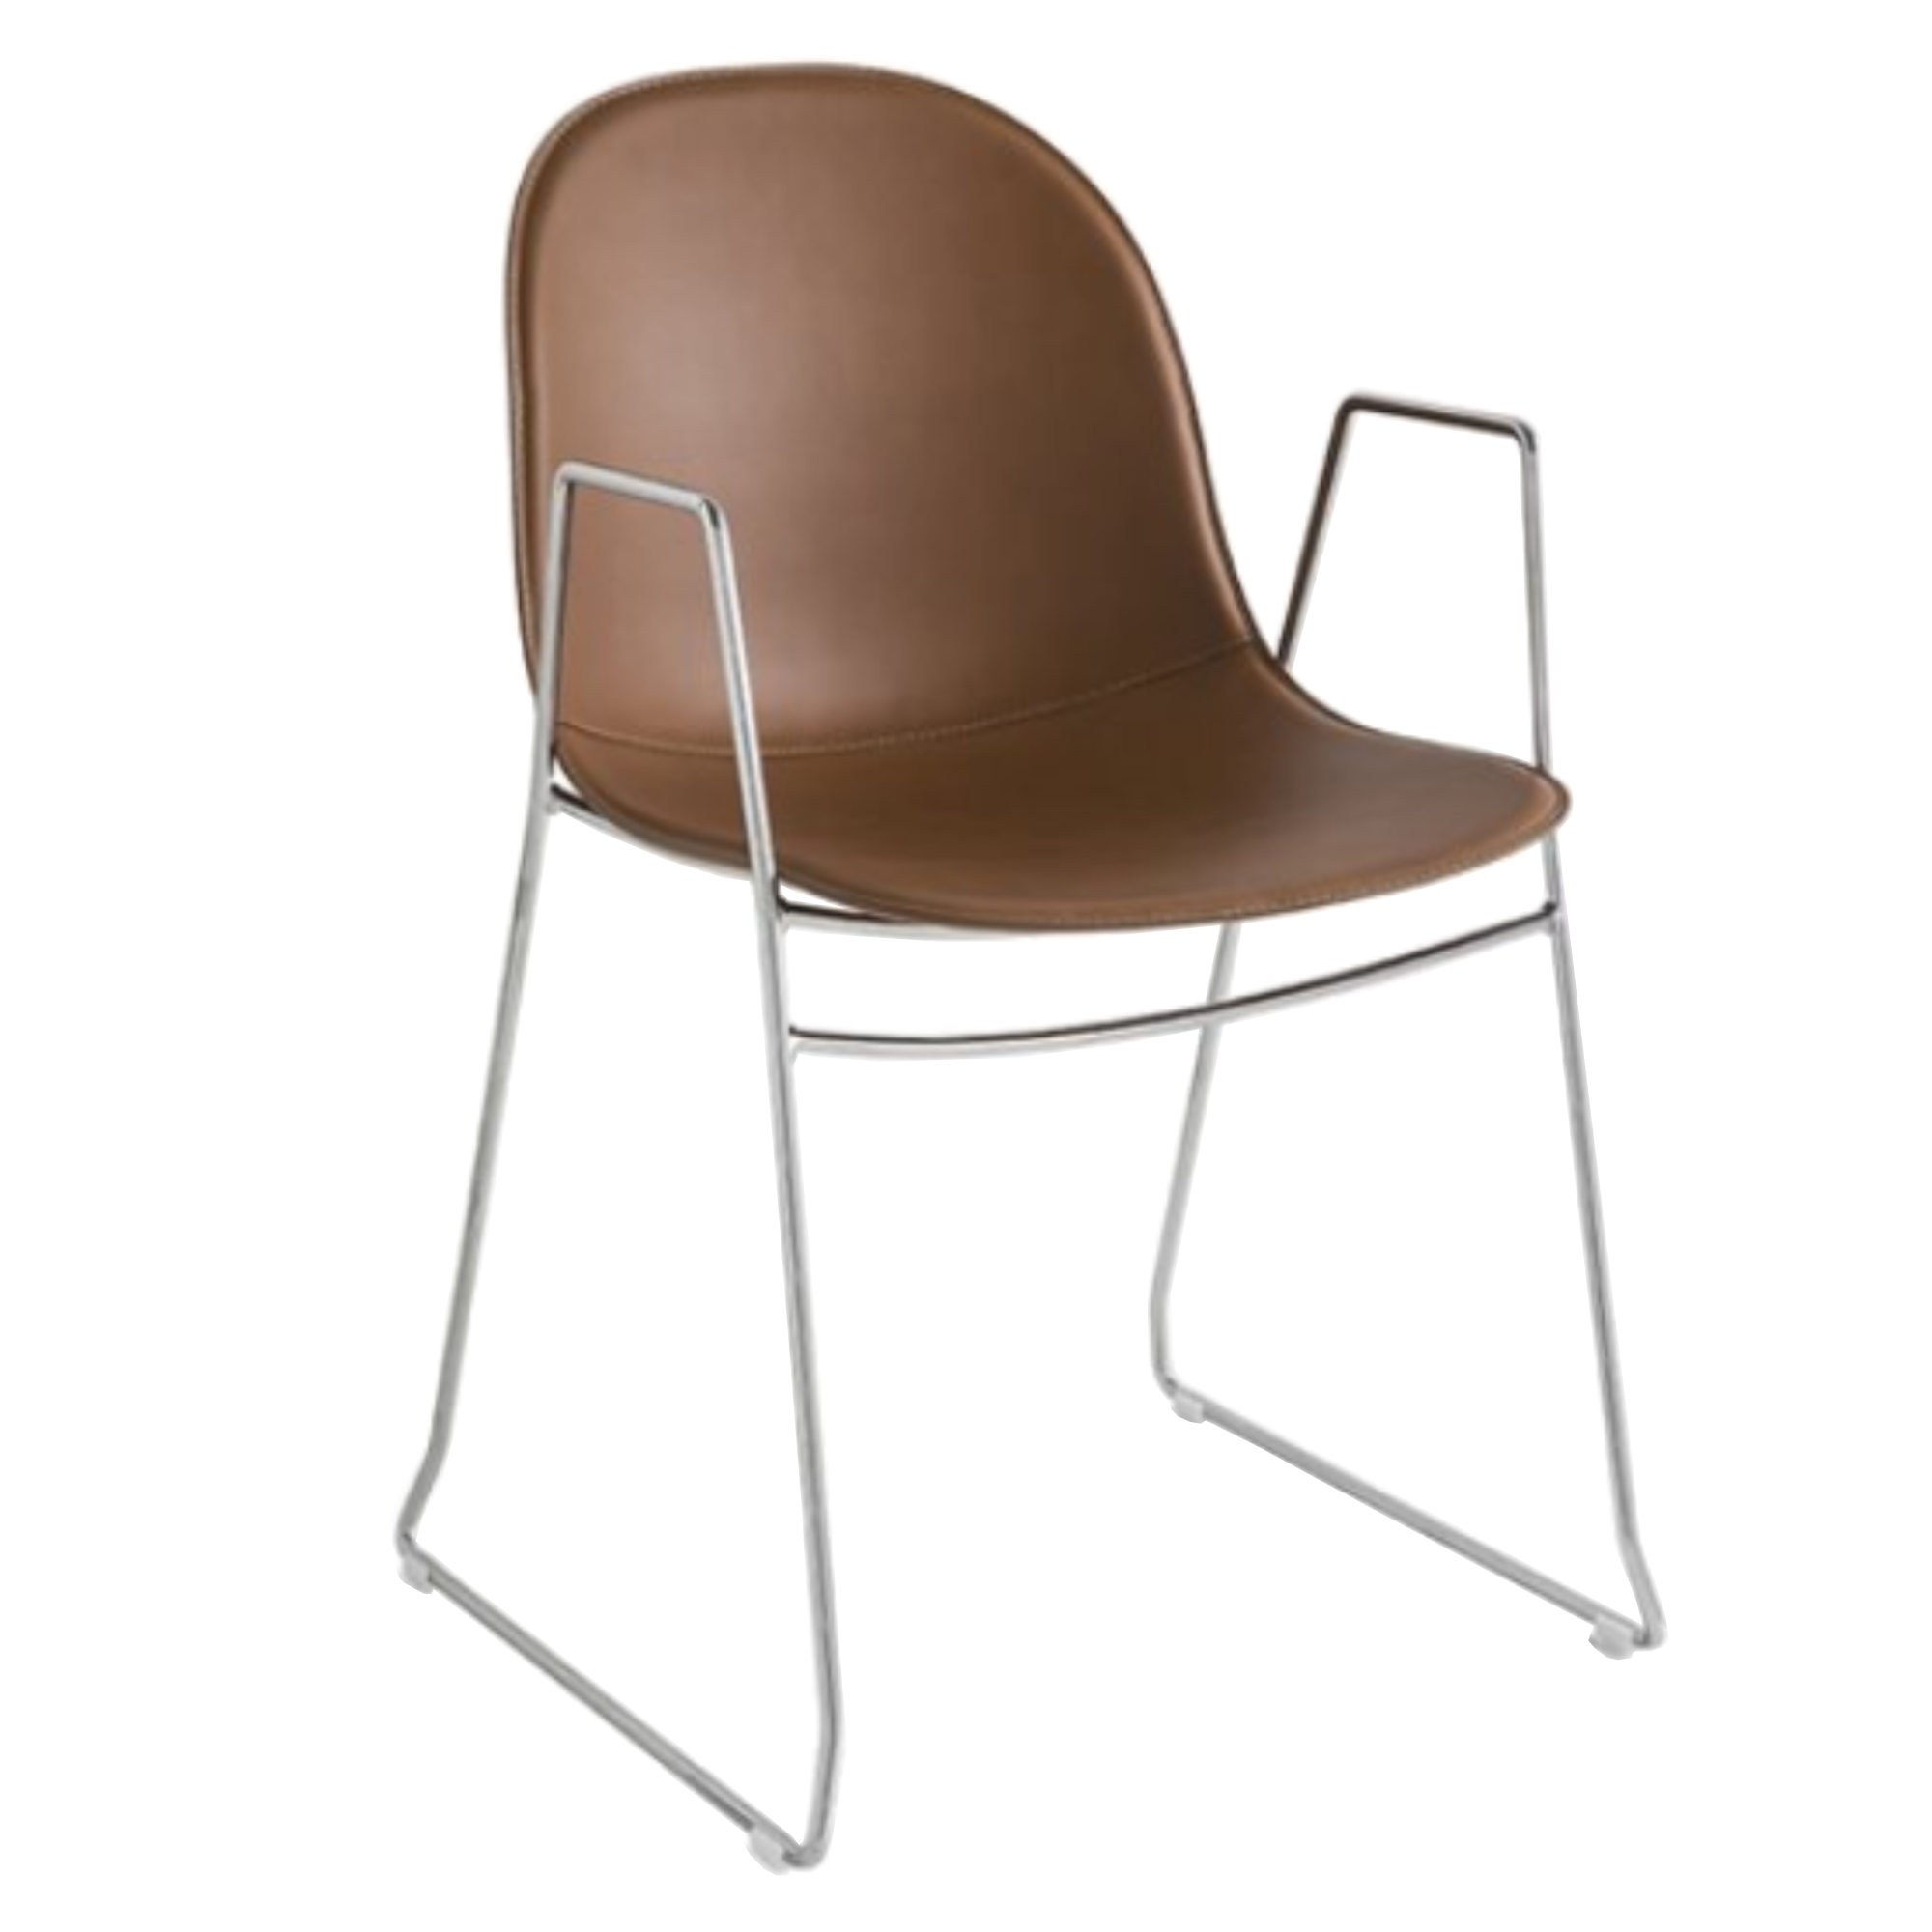 ACADEMY POLTRONCINA GAMBE A SLITTA, by CONNUBIA BY CALLIGARIS